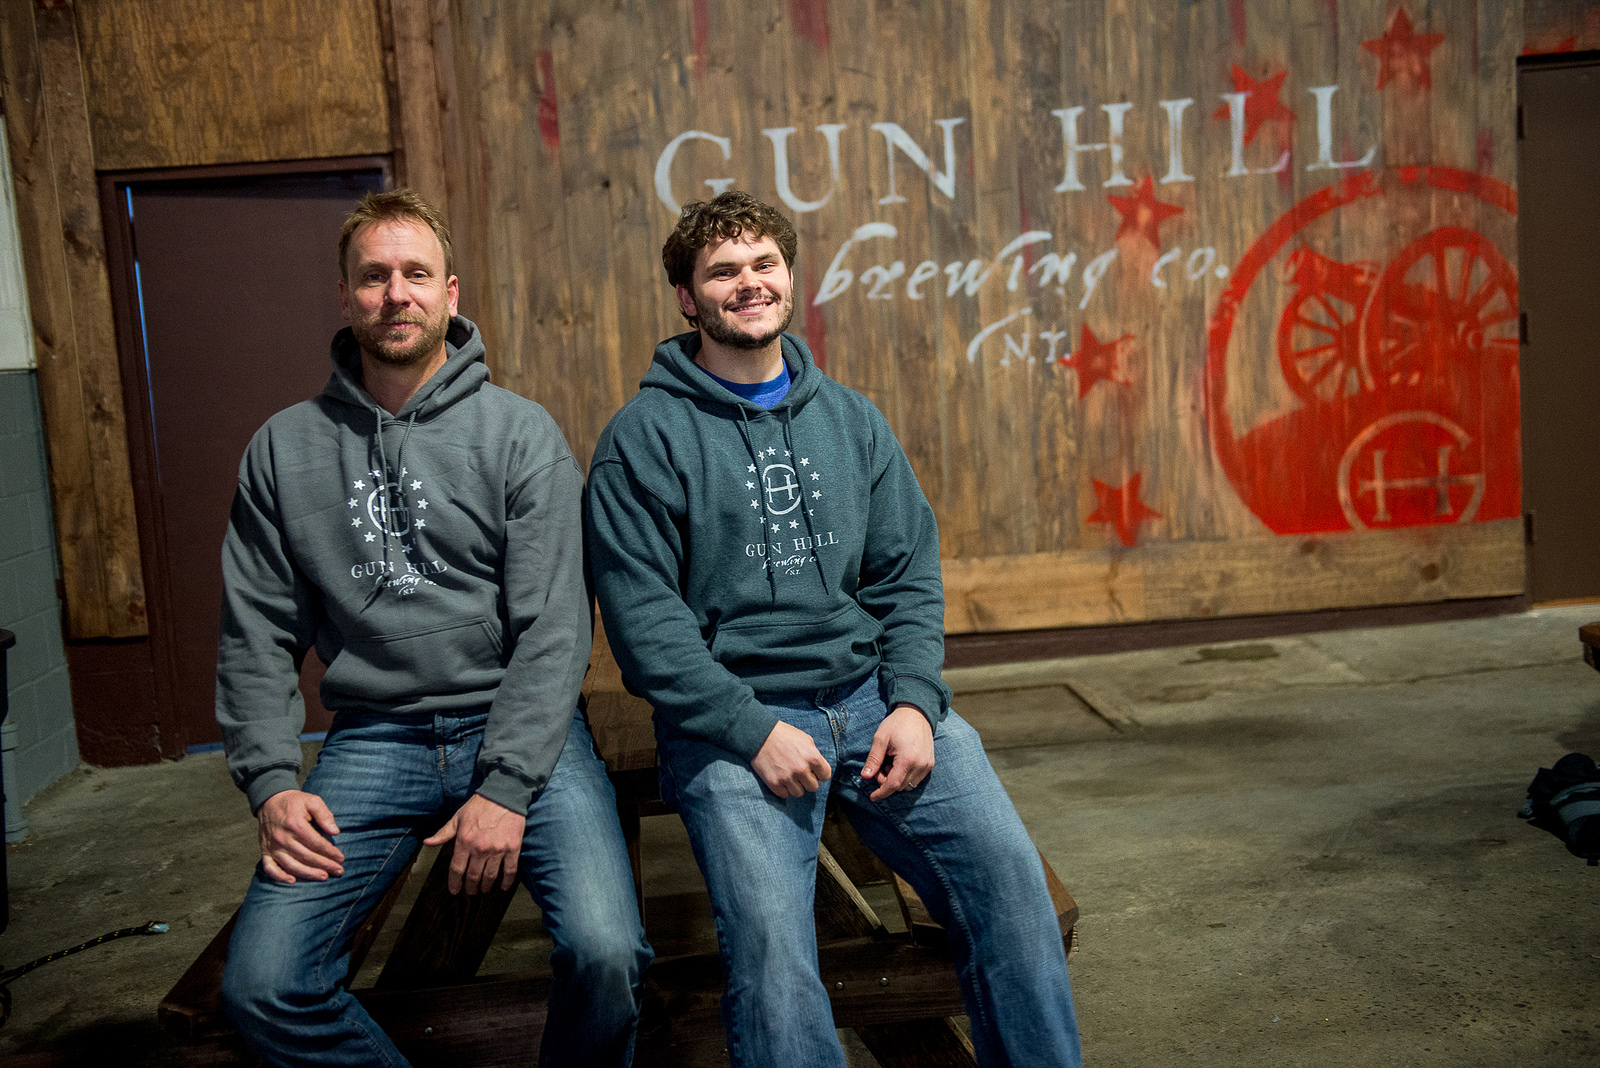 Lopez (right) is co-managing partner at Gun Hill Brewing in NYC, which opened in 2014.